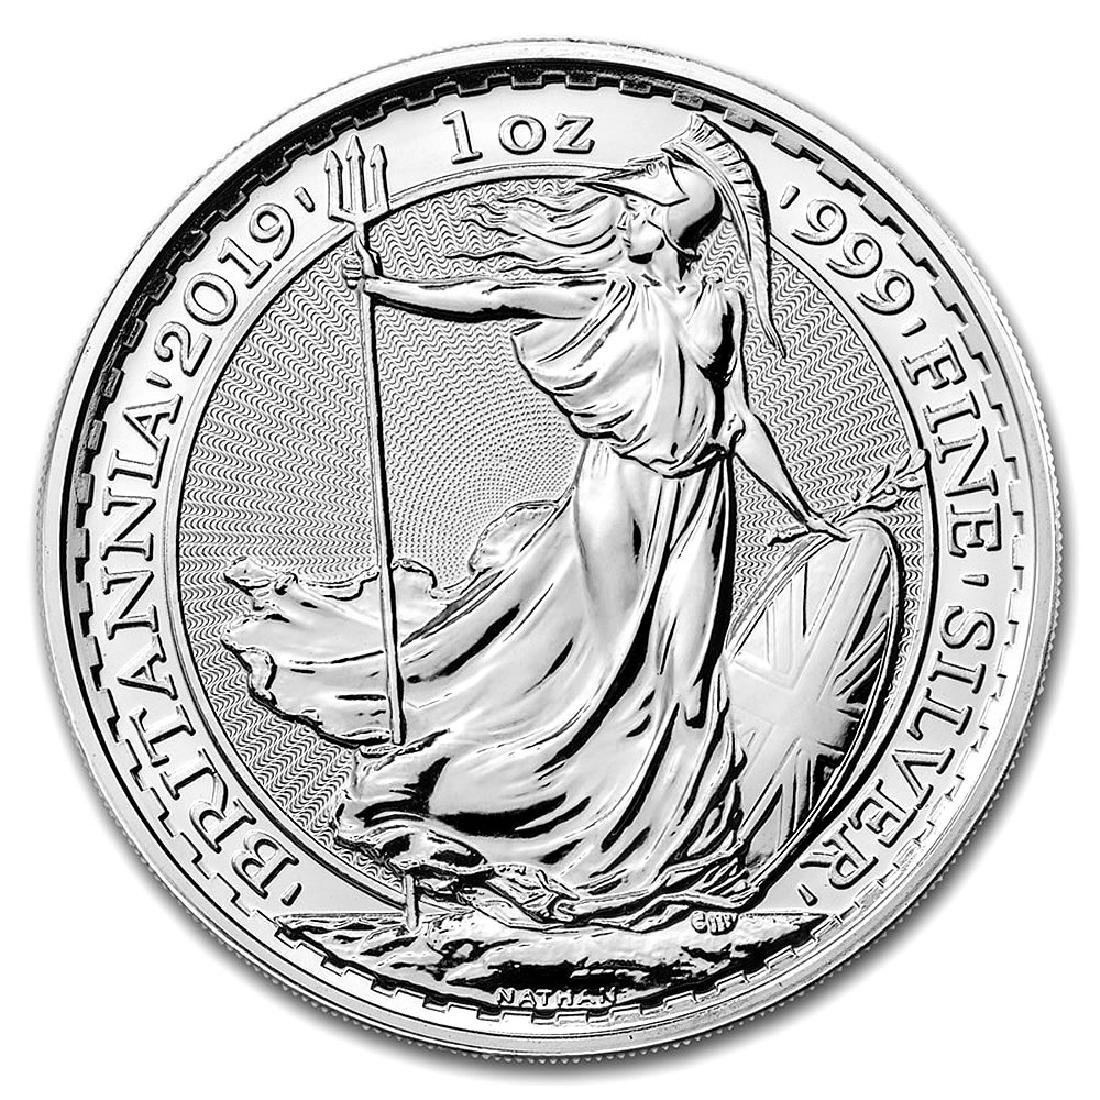 Uncirculated Silver Britannia 1 oz 2019